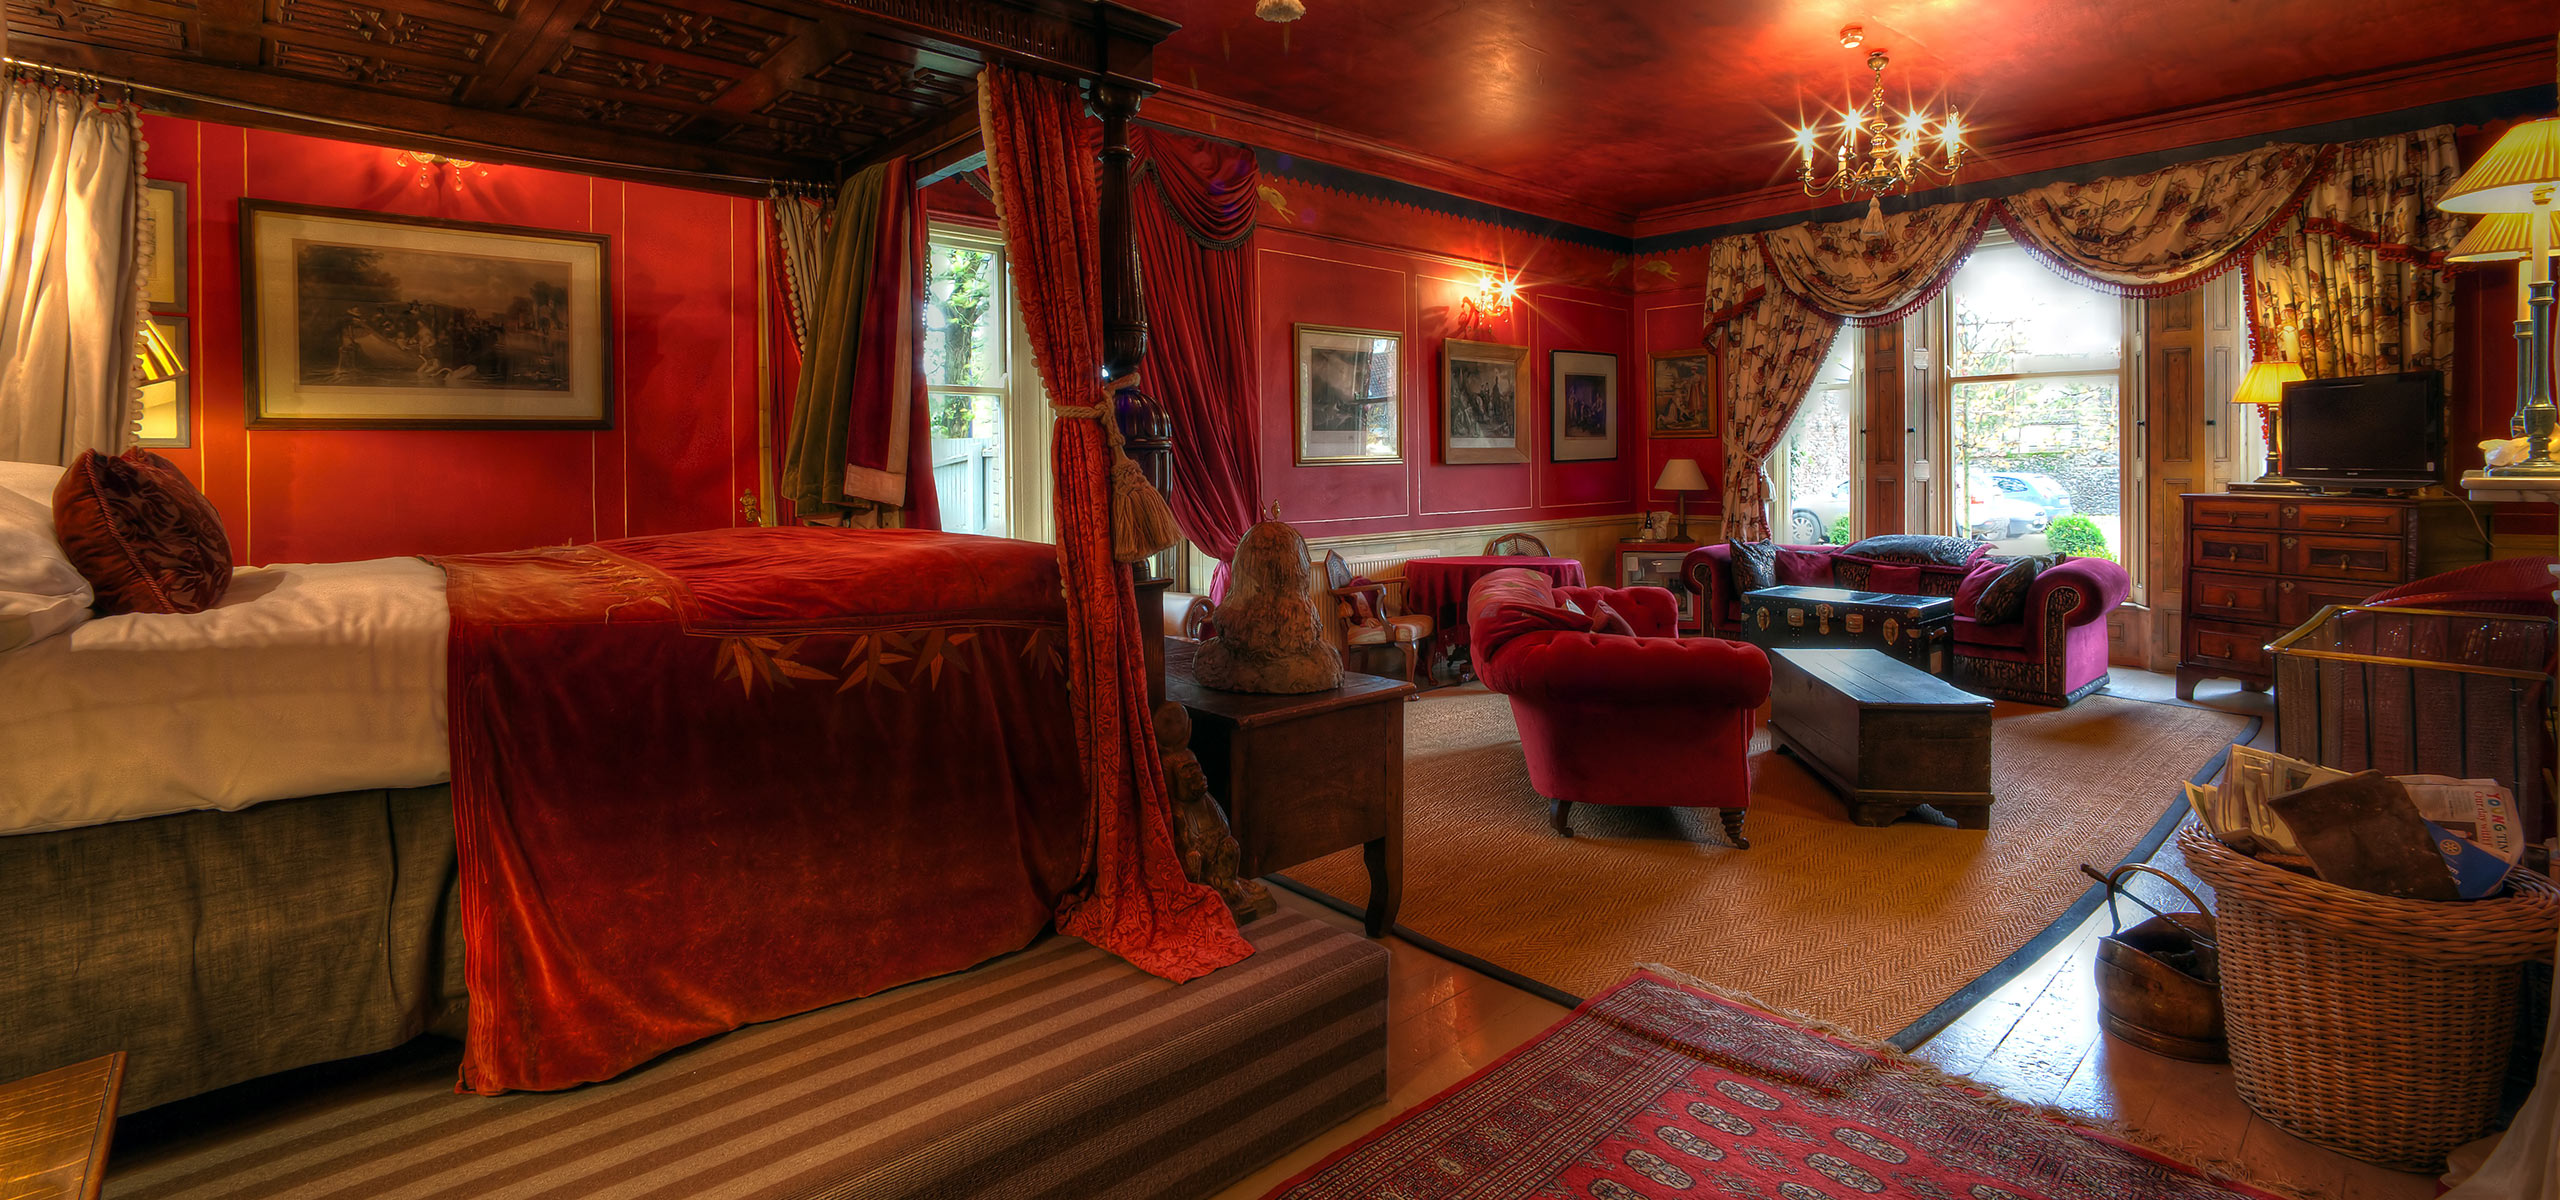 Red Room Strattons Hotel Luxury Boutique Hotel